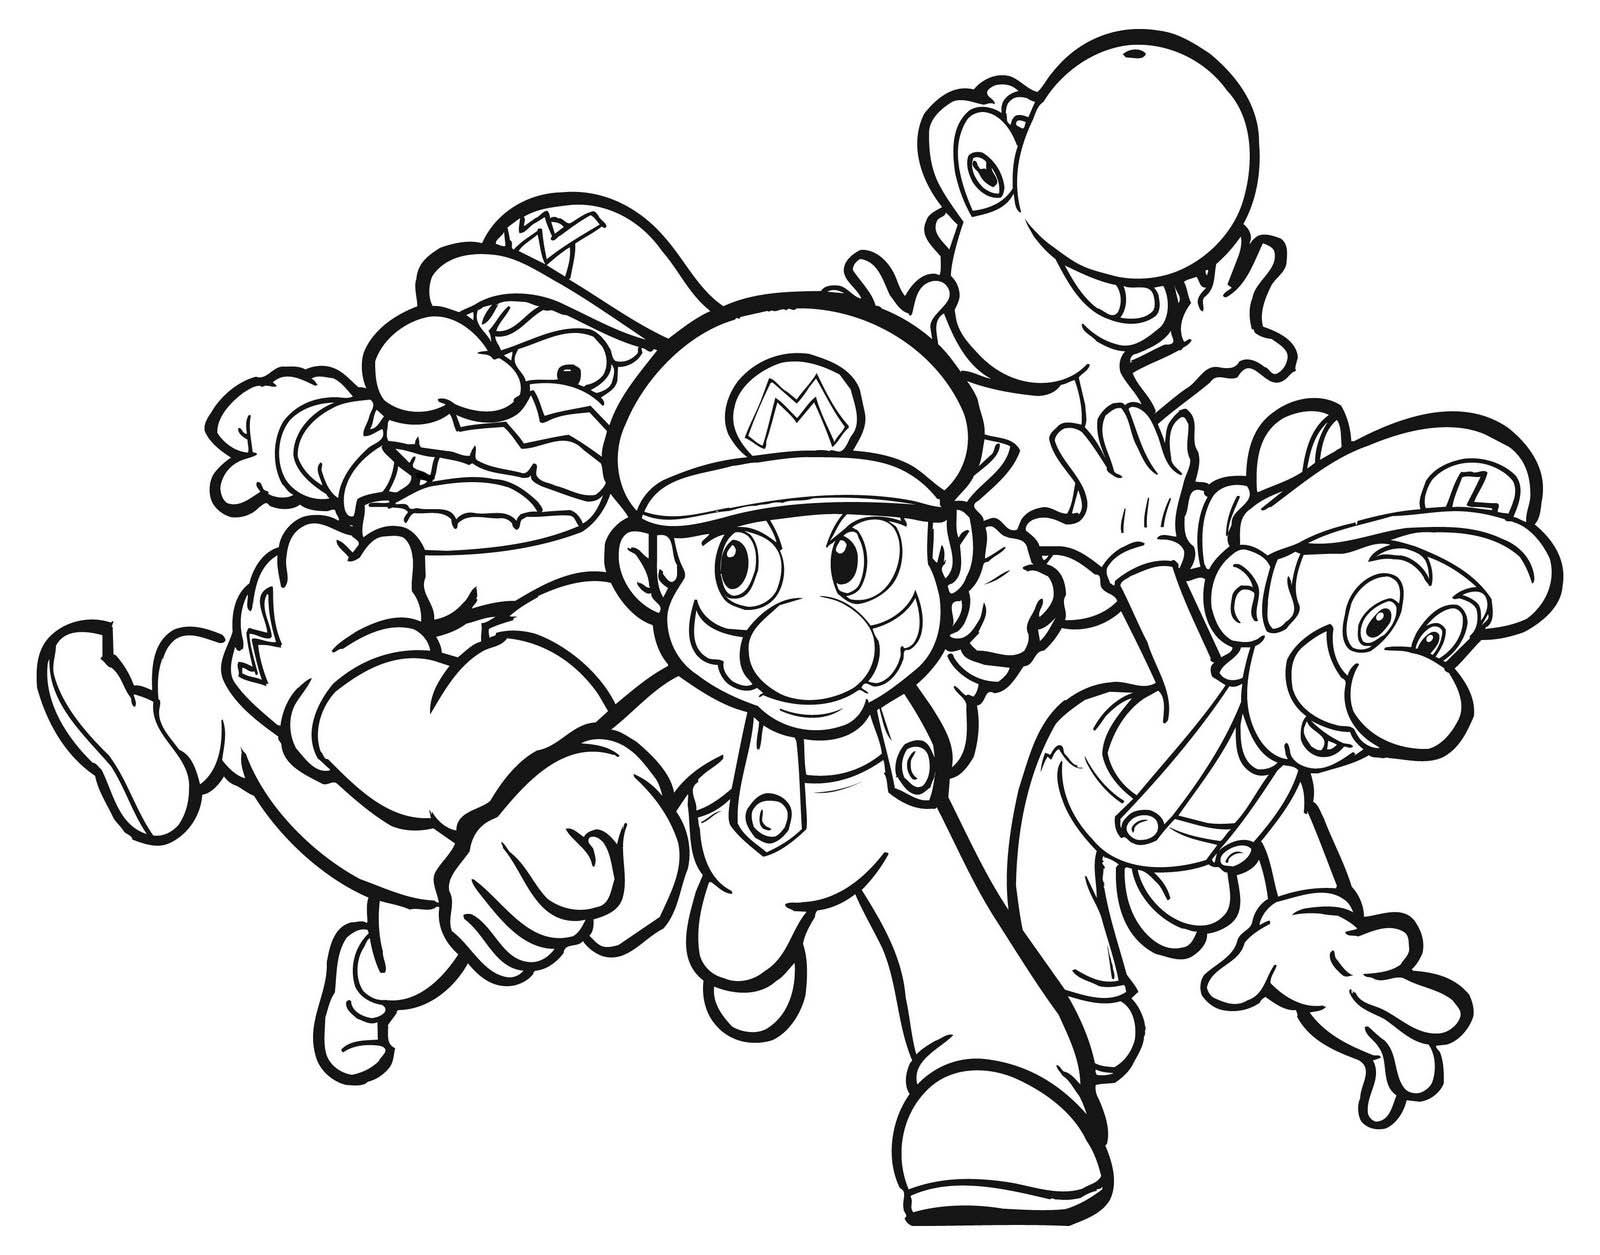 1600x1255 Free Printable Mario Coloring Pages For Kids Mario Bros, Super